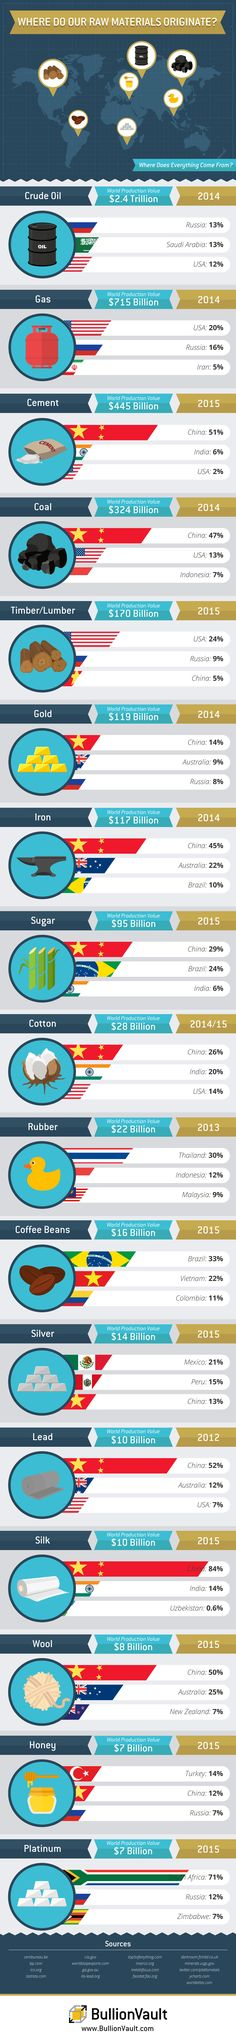 Where commodities come from - Business Insider